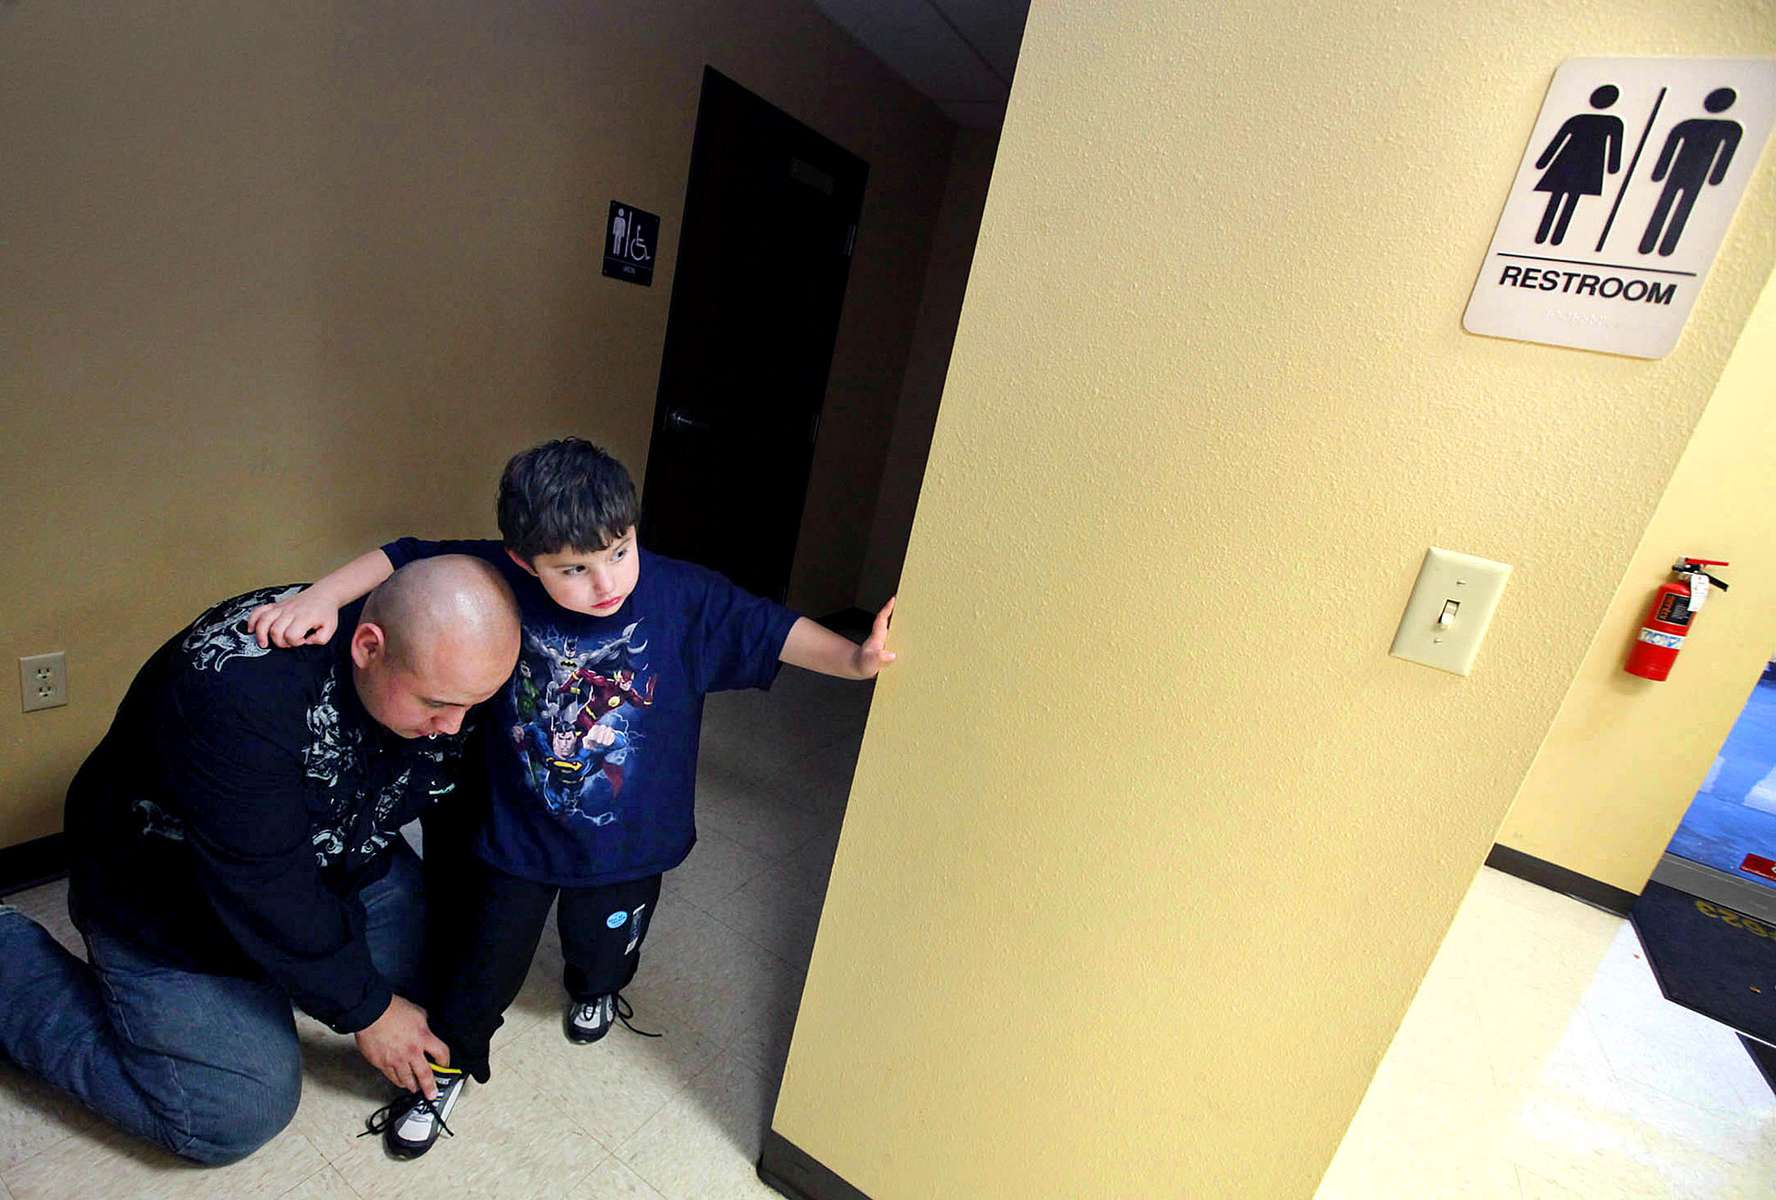 Bathroom issues are obviously a sensitive one for transgendered people. Izzy's father Diego rolls up his pant legs after using the men's bathroom. Because Izzy has a medical diagnosis, when he attends school they are required to make sure there is a facility for him to use, and he cannot be forced to use the girl's restroom.